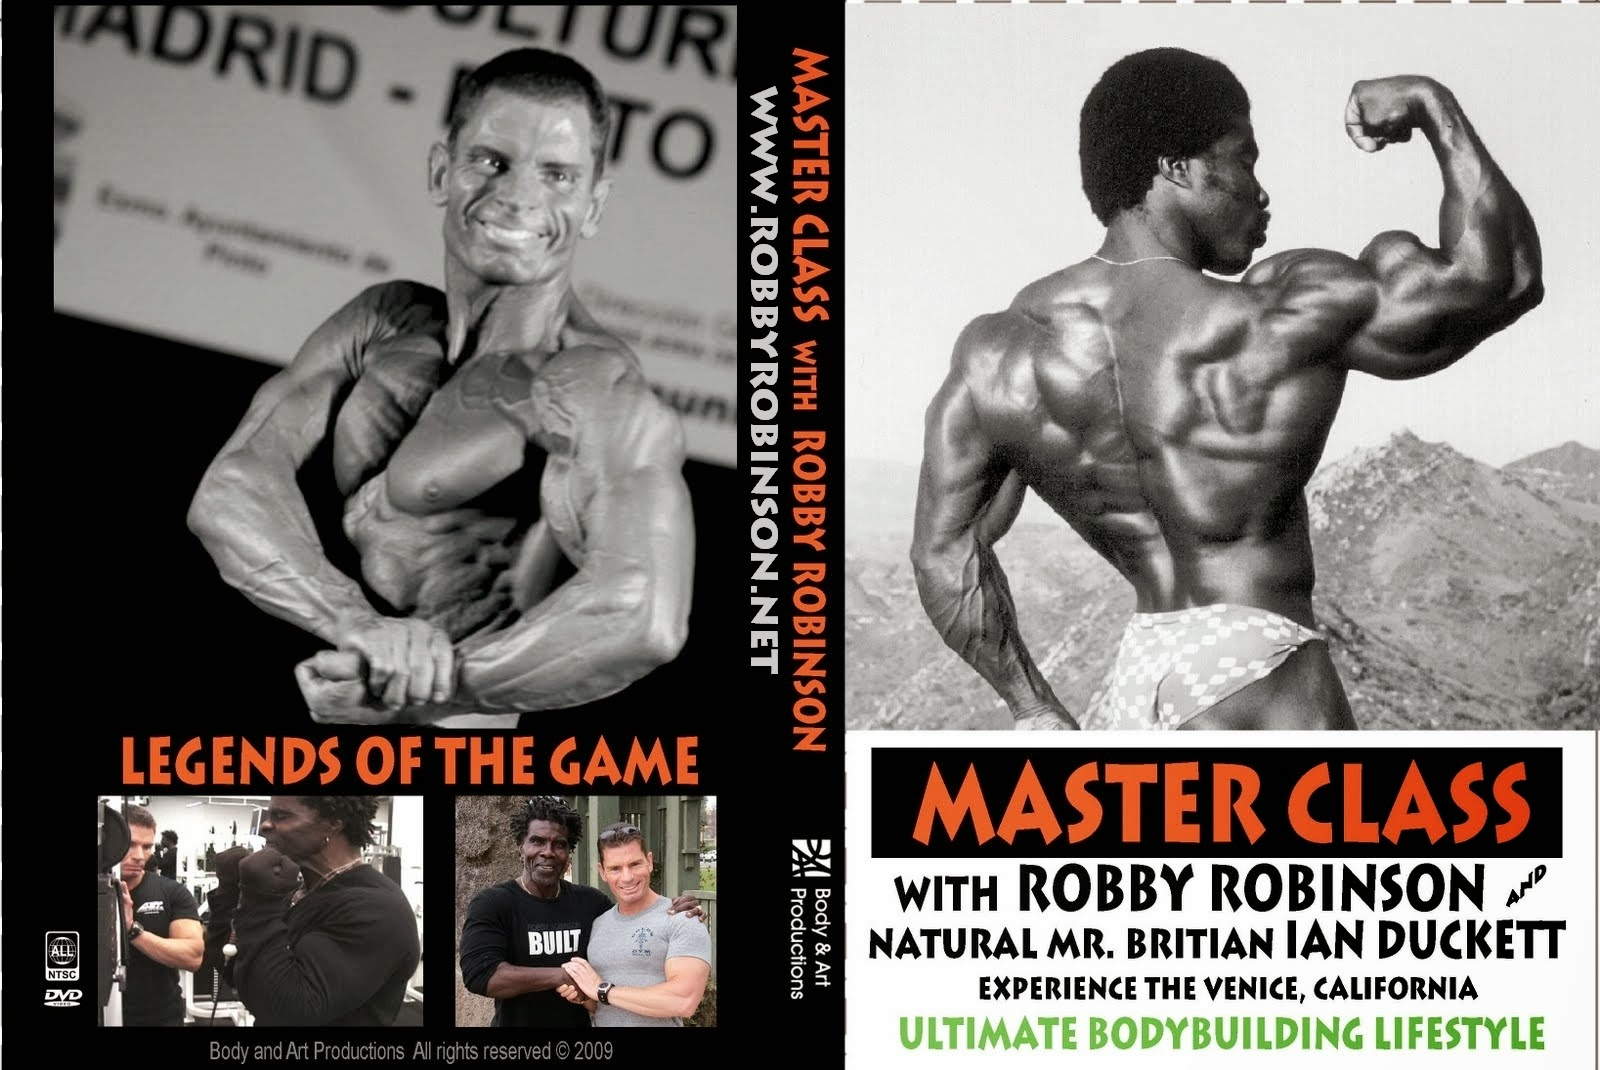 MASTER CLASS with ROBBY ROBINSON - INSTRUCTIONAL DVD Train with the legends of the iron game ● www.robbyrobinson.net//dvd_master_class.php ●